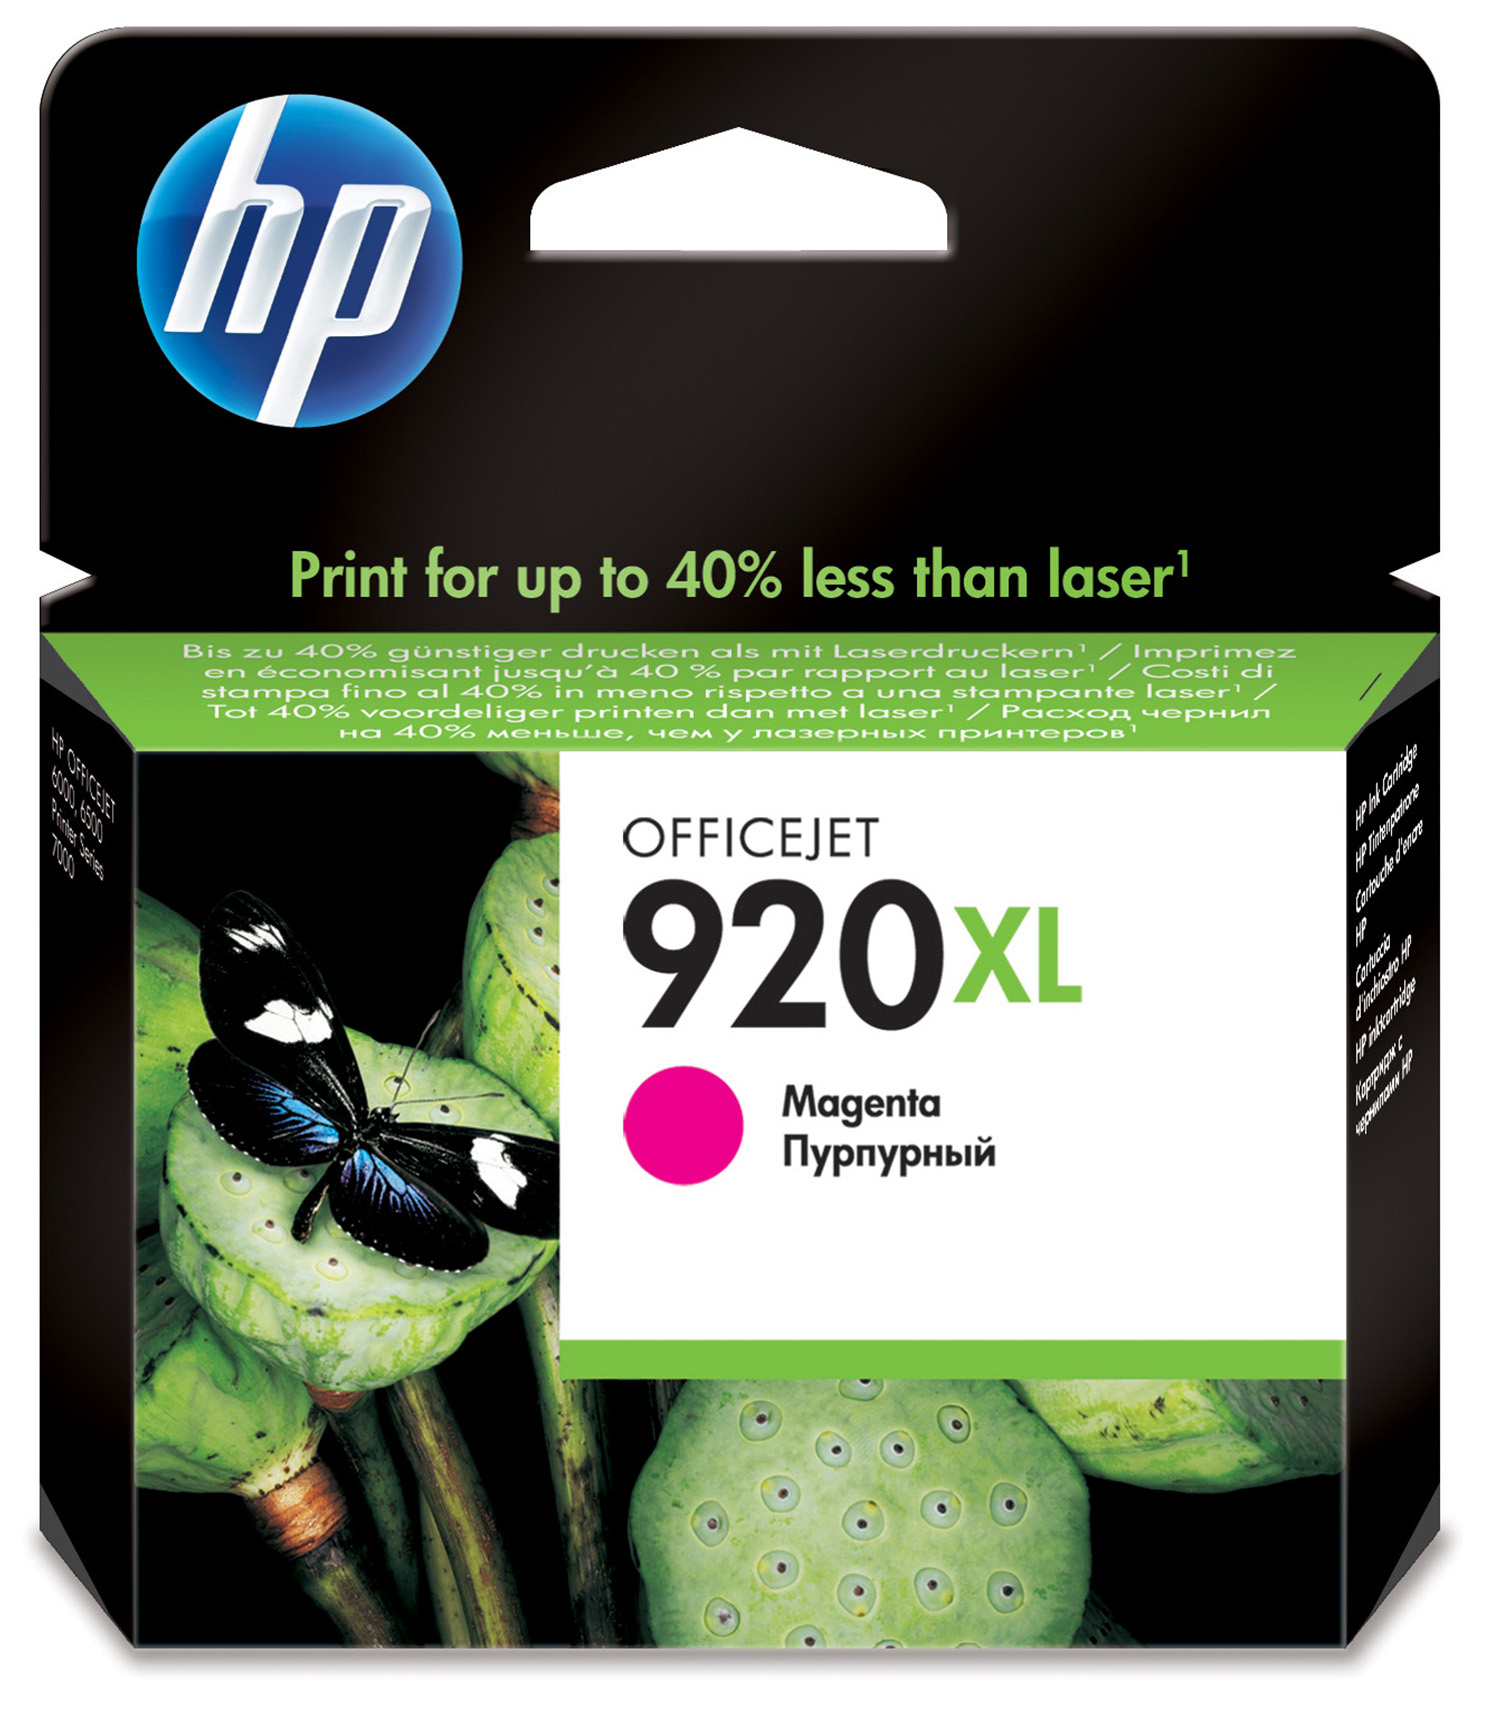 Hpcd973ae      Hp 920xl Magenta Inkjet        Hp 920xl Magenta Ink Cartridge                               - UF01